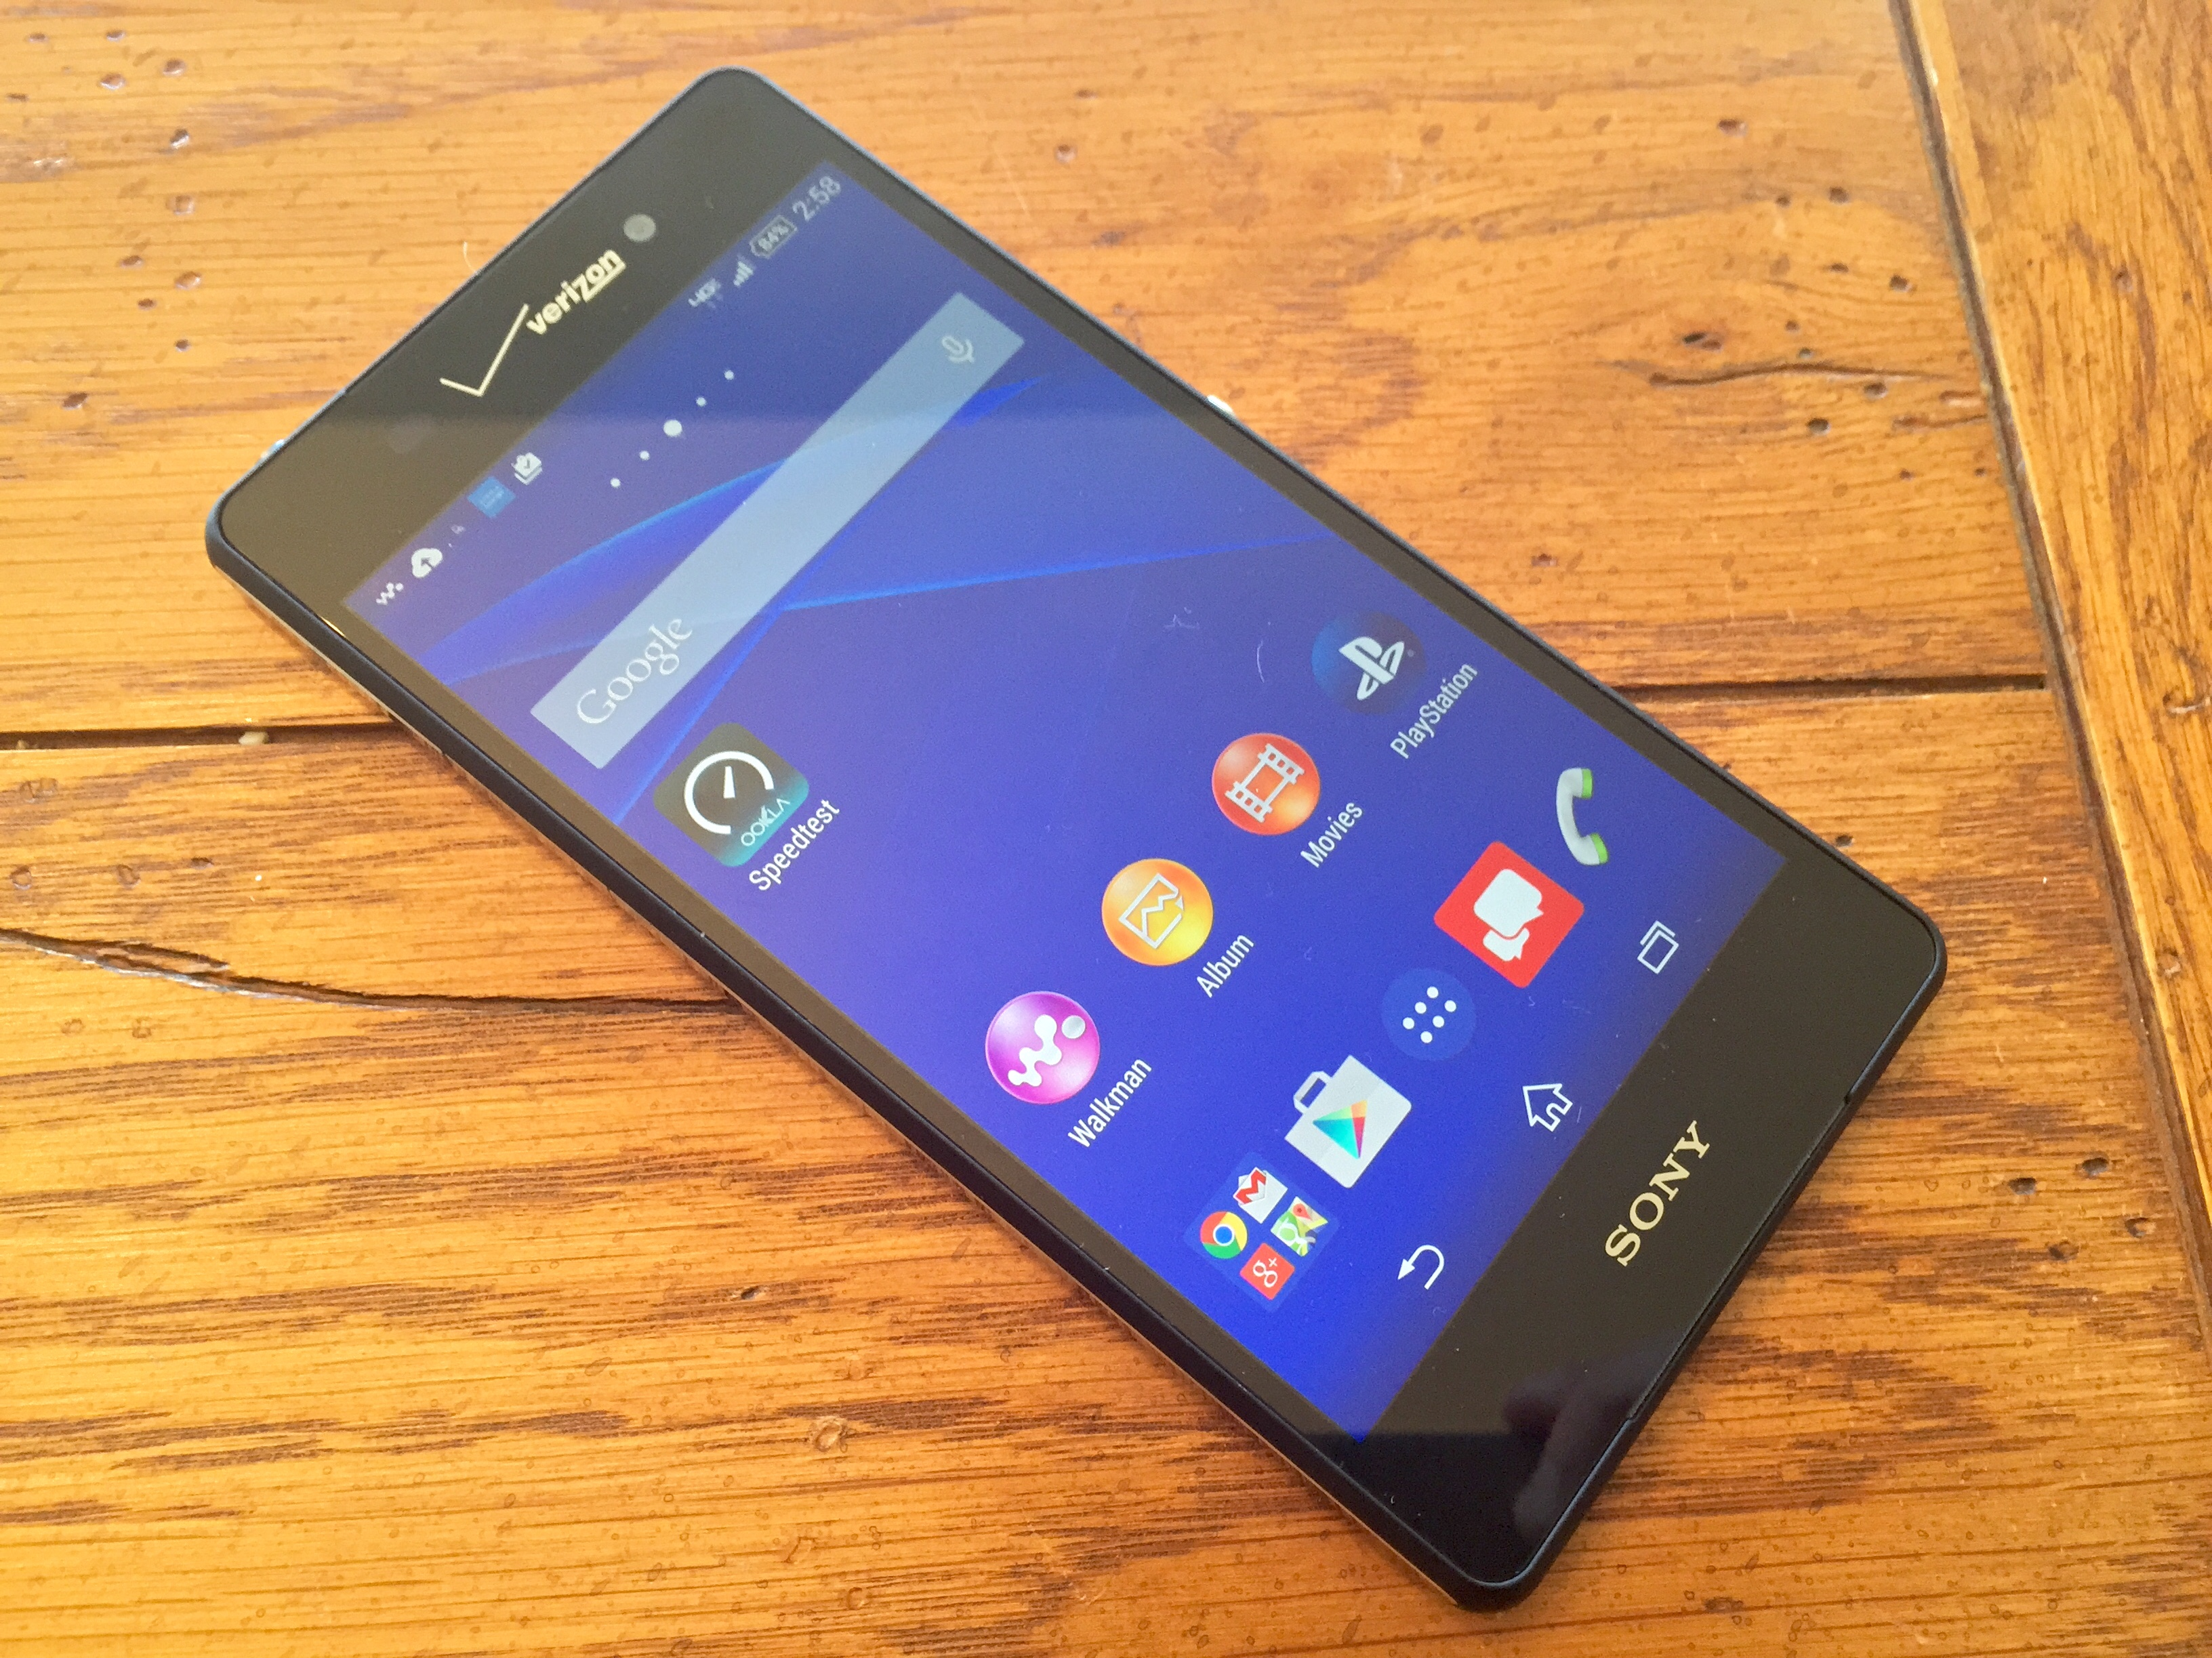 https://gigaom2.files.wordpress.com/2014/11/xperia-z3v-featured.jpg?quality=80&strip=all&w=640